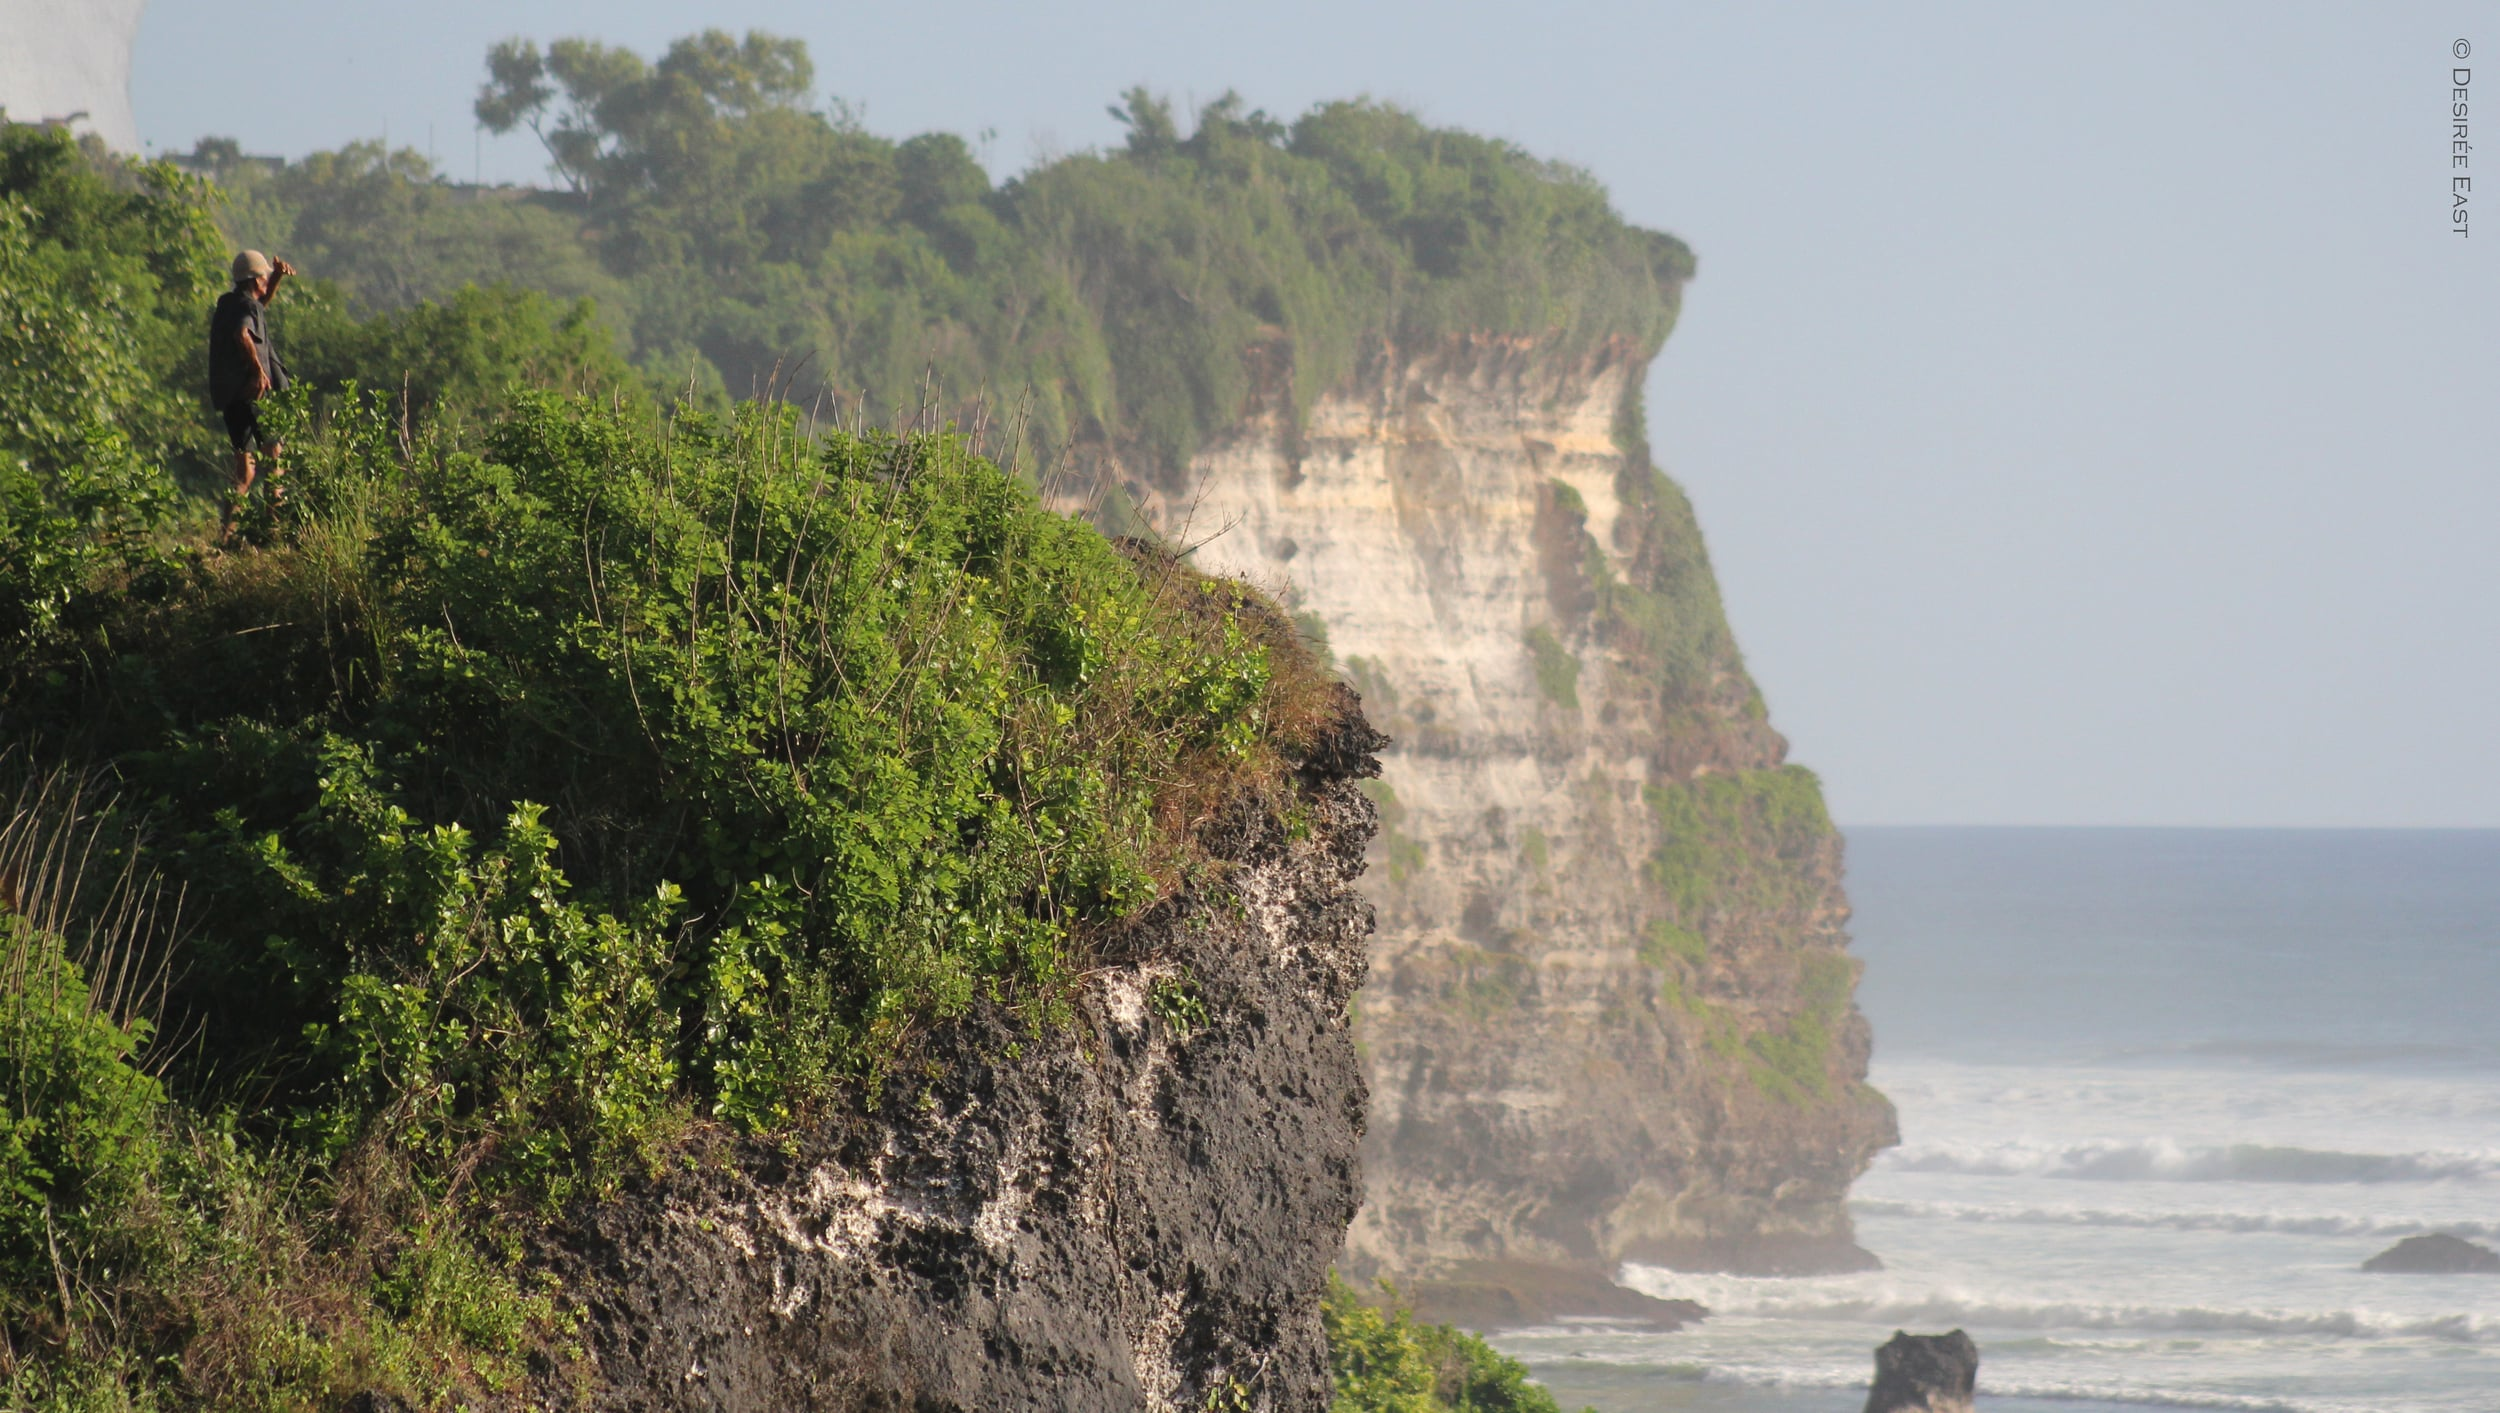 surf check from the cliff. bali, indonesia. photo by desiree east